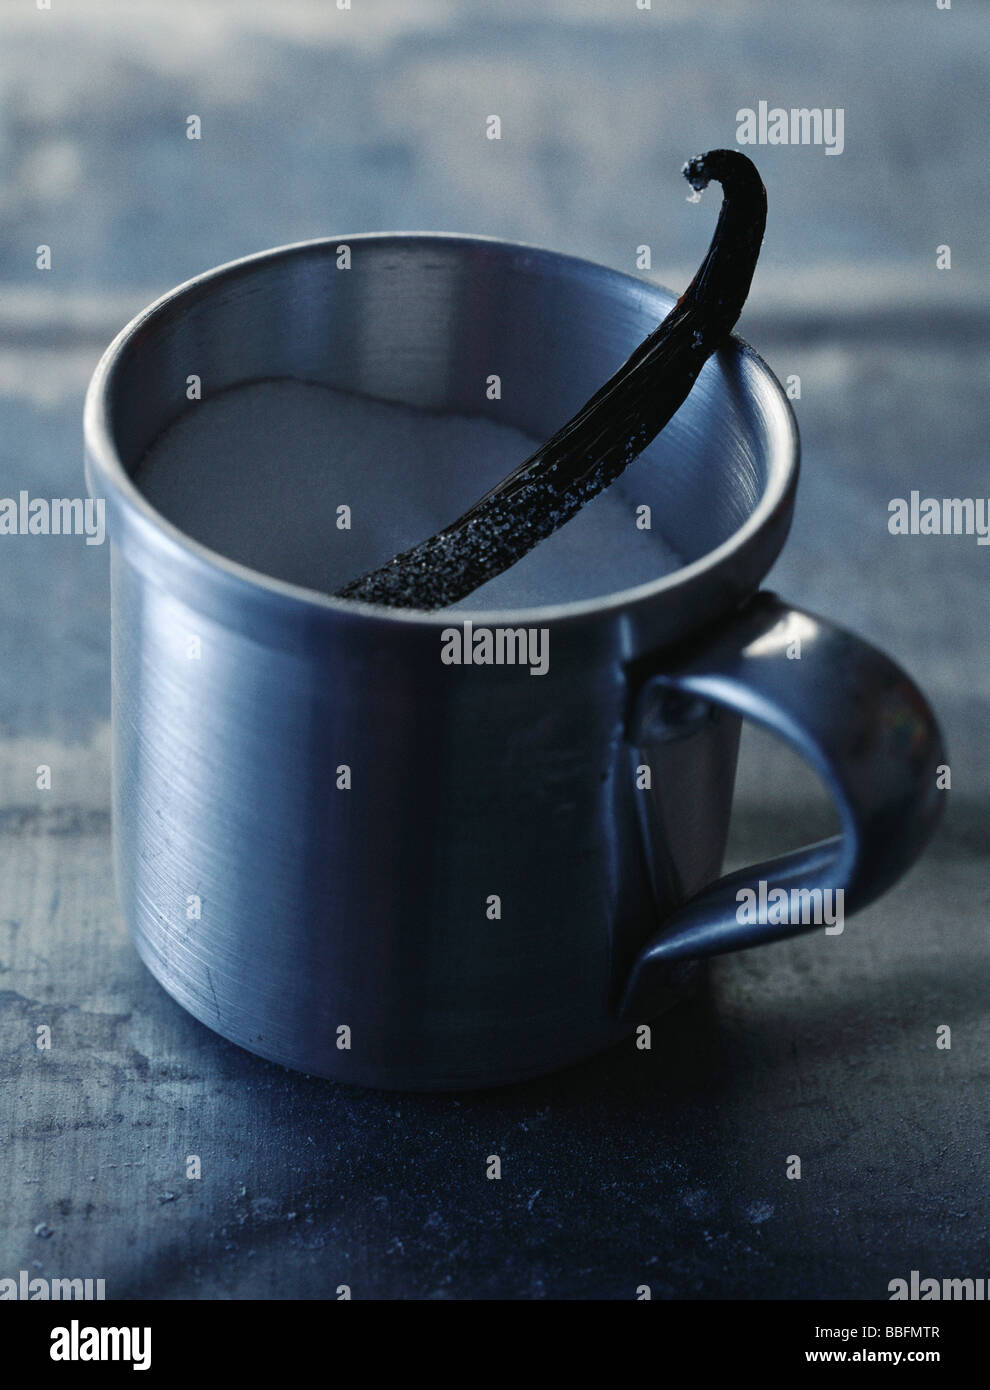 Mug of sugar with vanilla pod - Stock Image